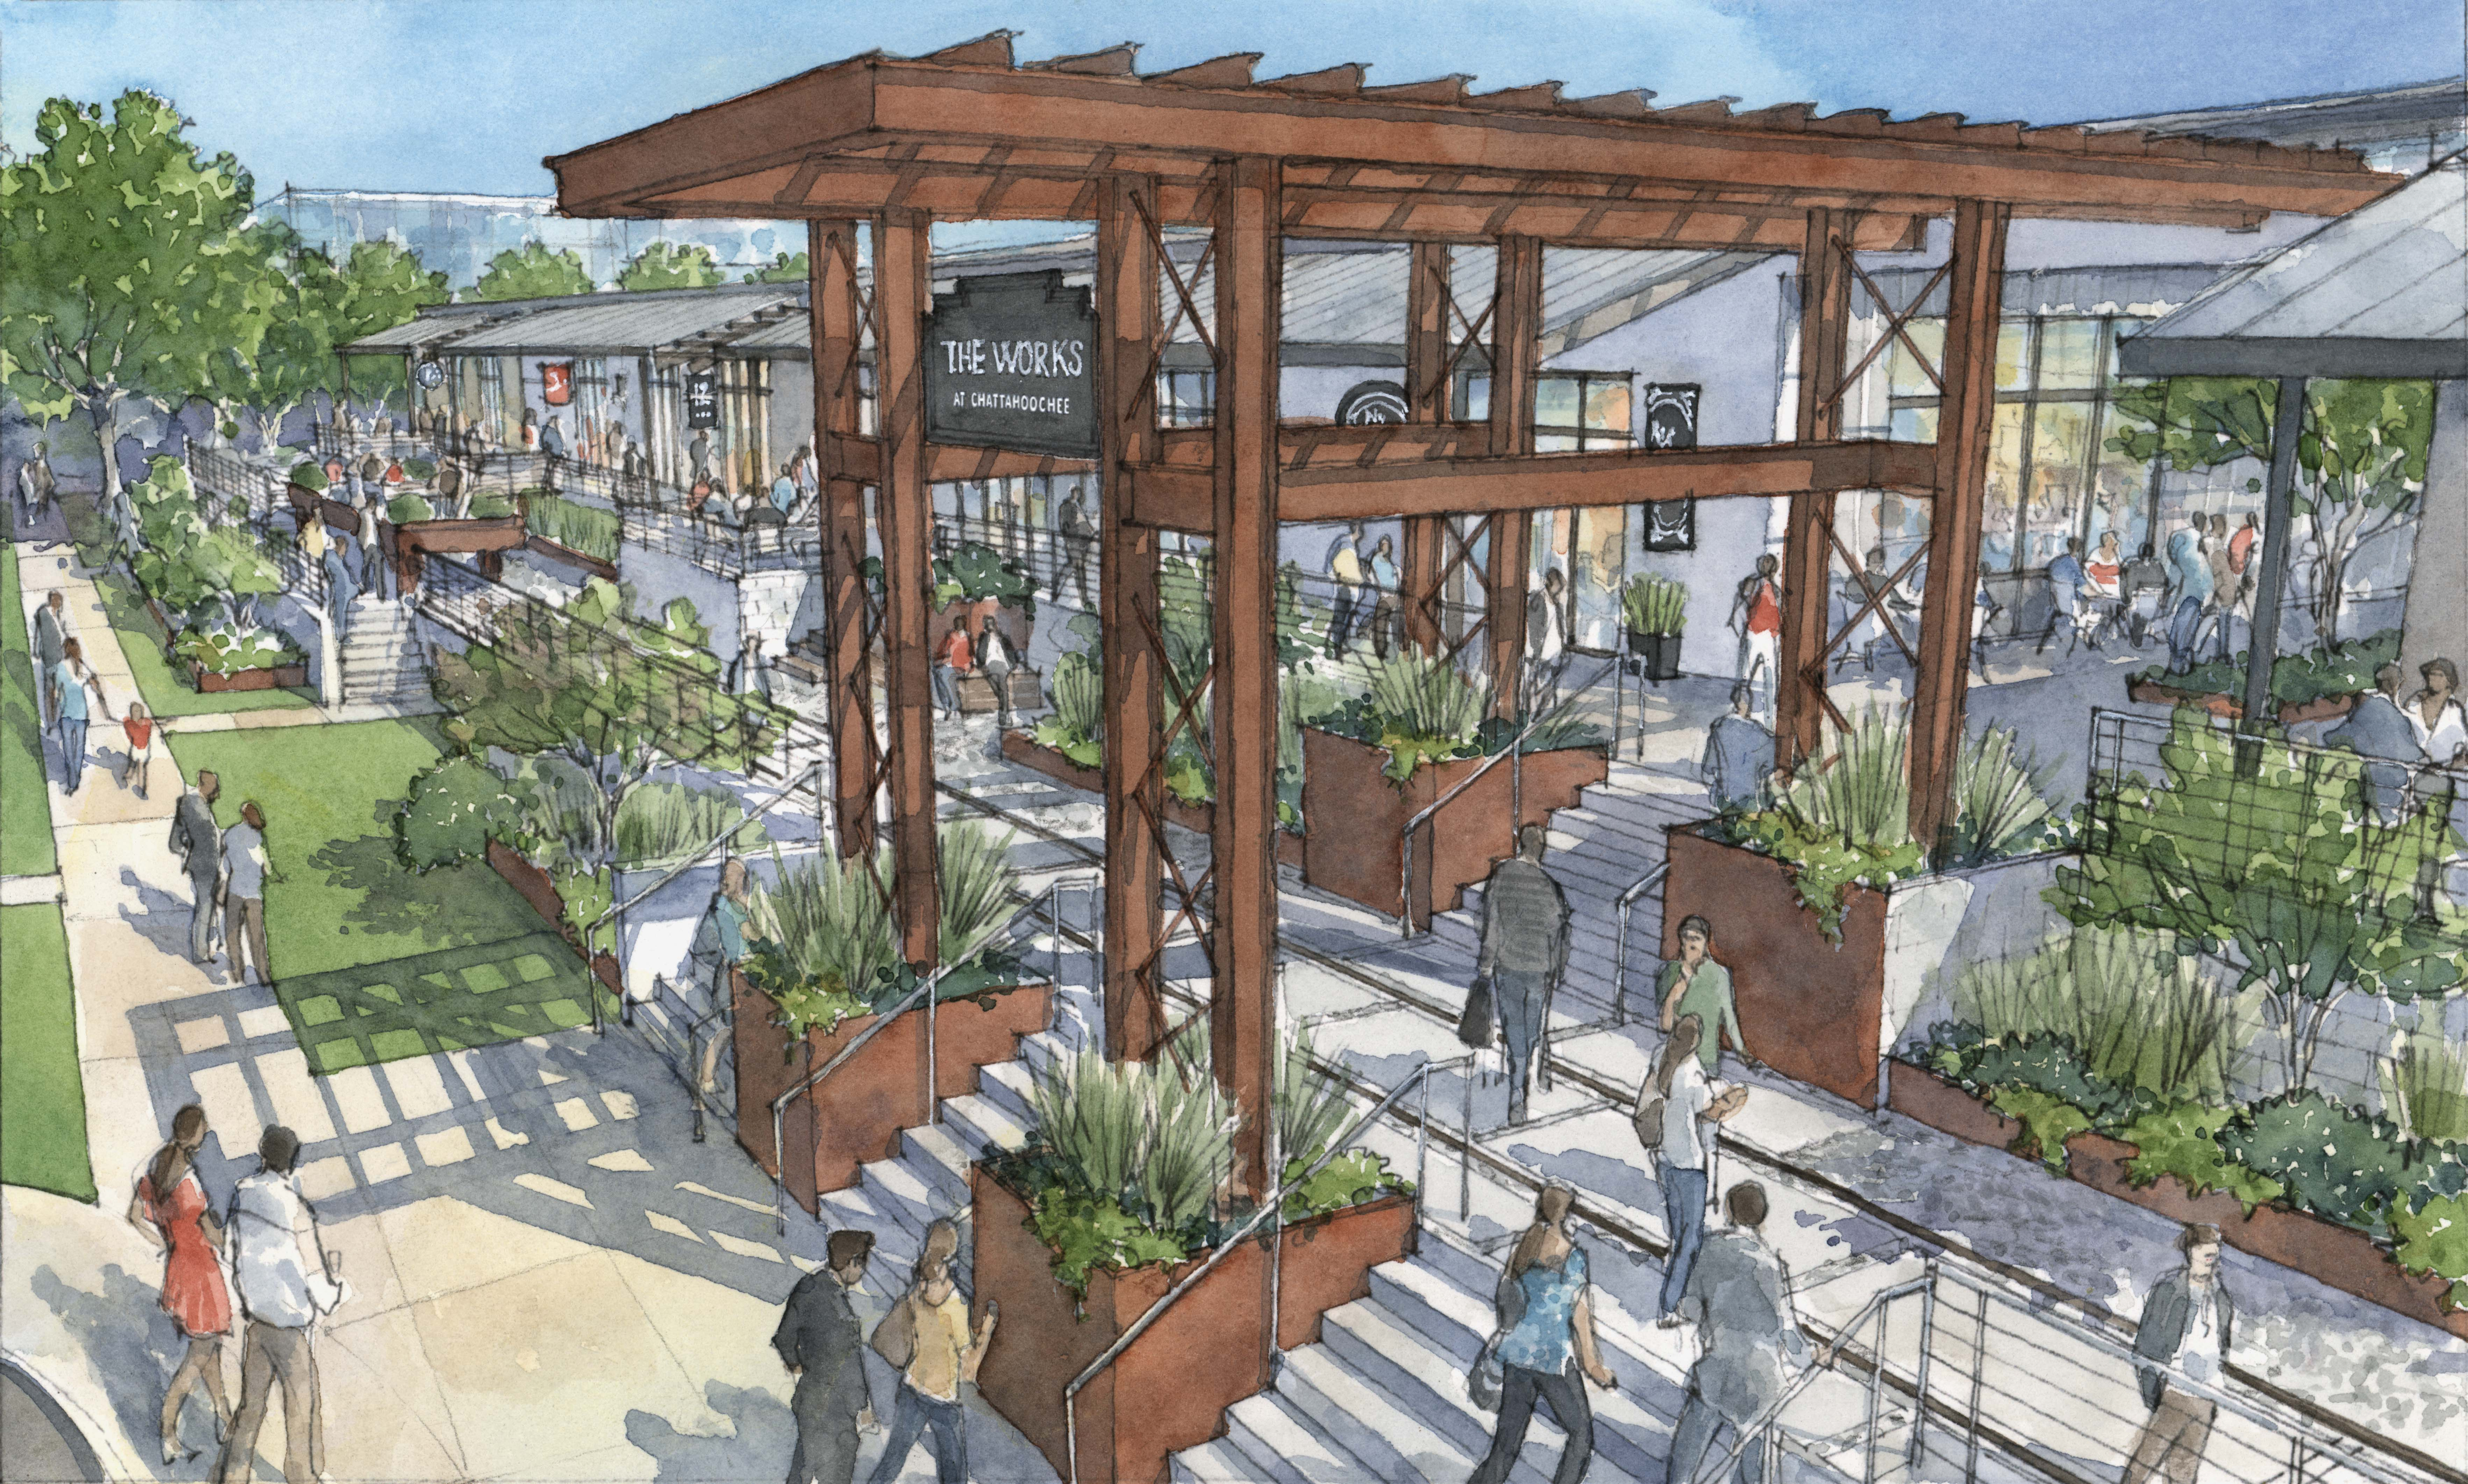 First look: 'The Works' planned for 80 acres on Atlanta's Upper Westside